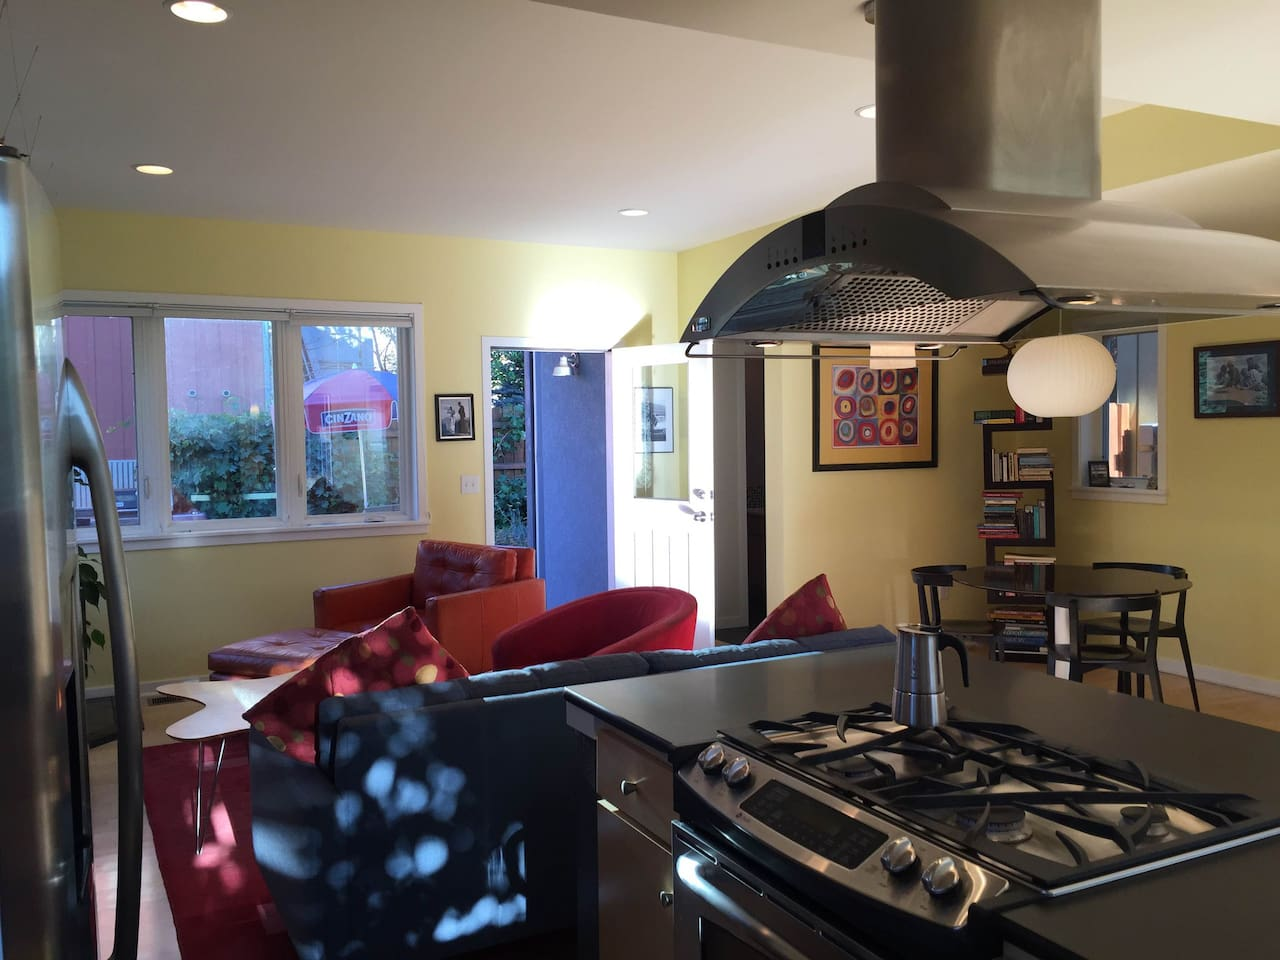 Our beautiful, open kitchen and adjacent living room.